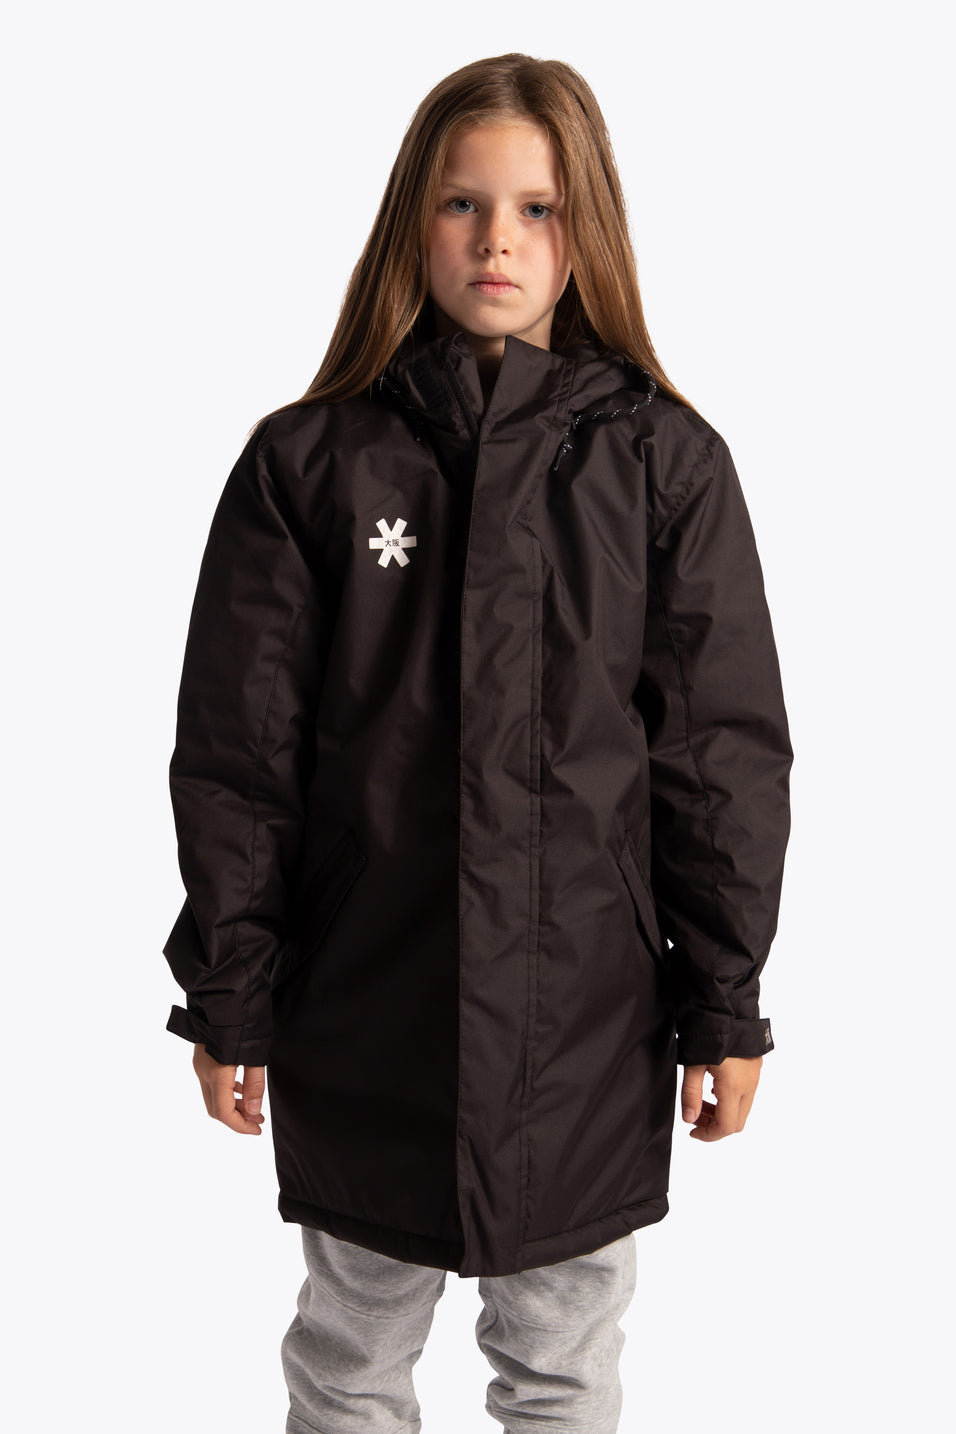 osaka kids jackets black